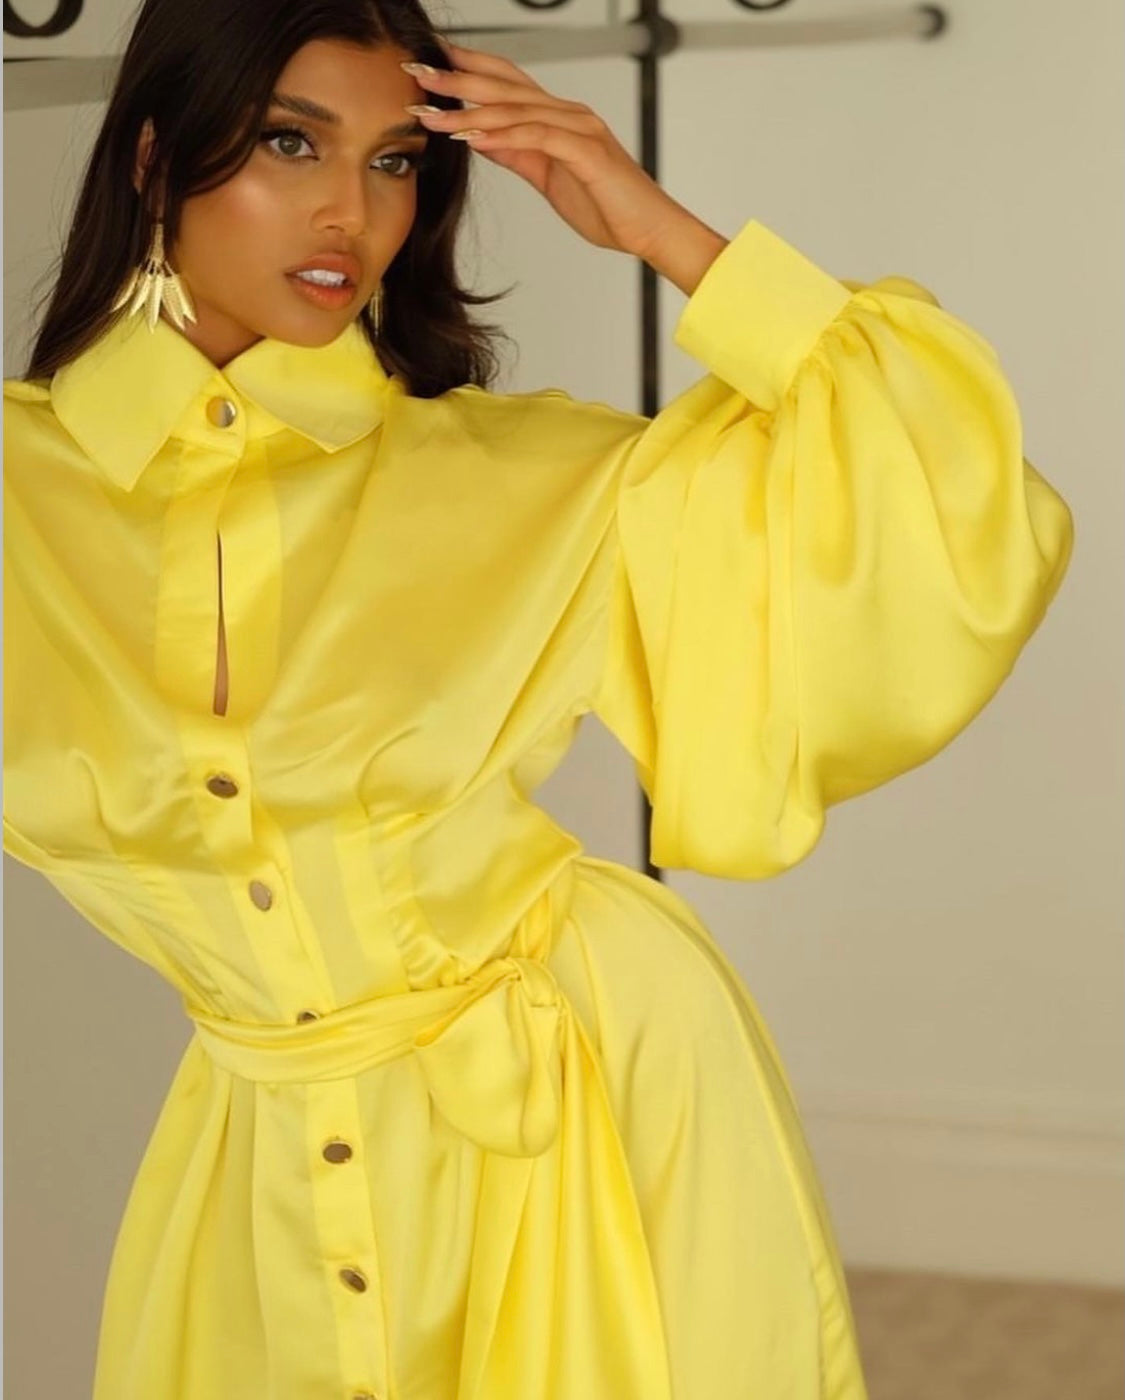 image of Shamaya shambizzle in yellow Khirzad dress and gold palm tree earrings